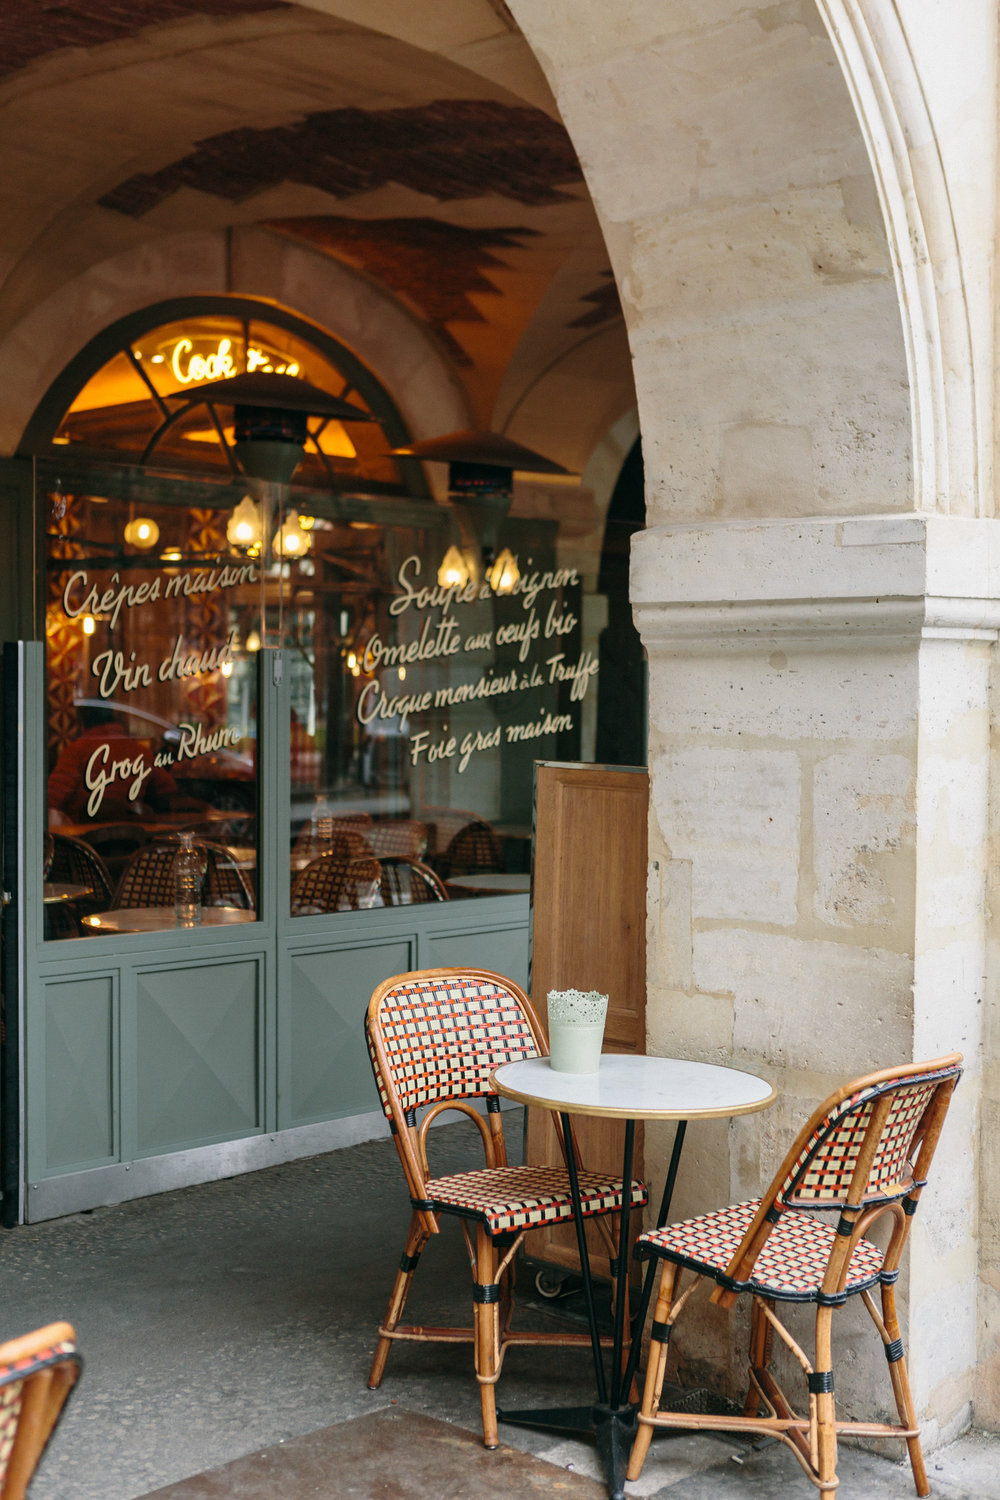 Parisian cafe captured by Paris Photographer Federico Guendel IheartParis www.iheartparis.fr